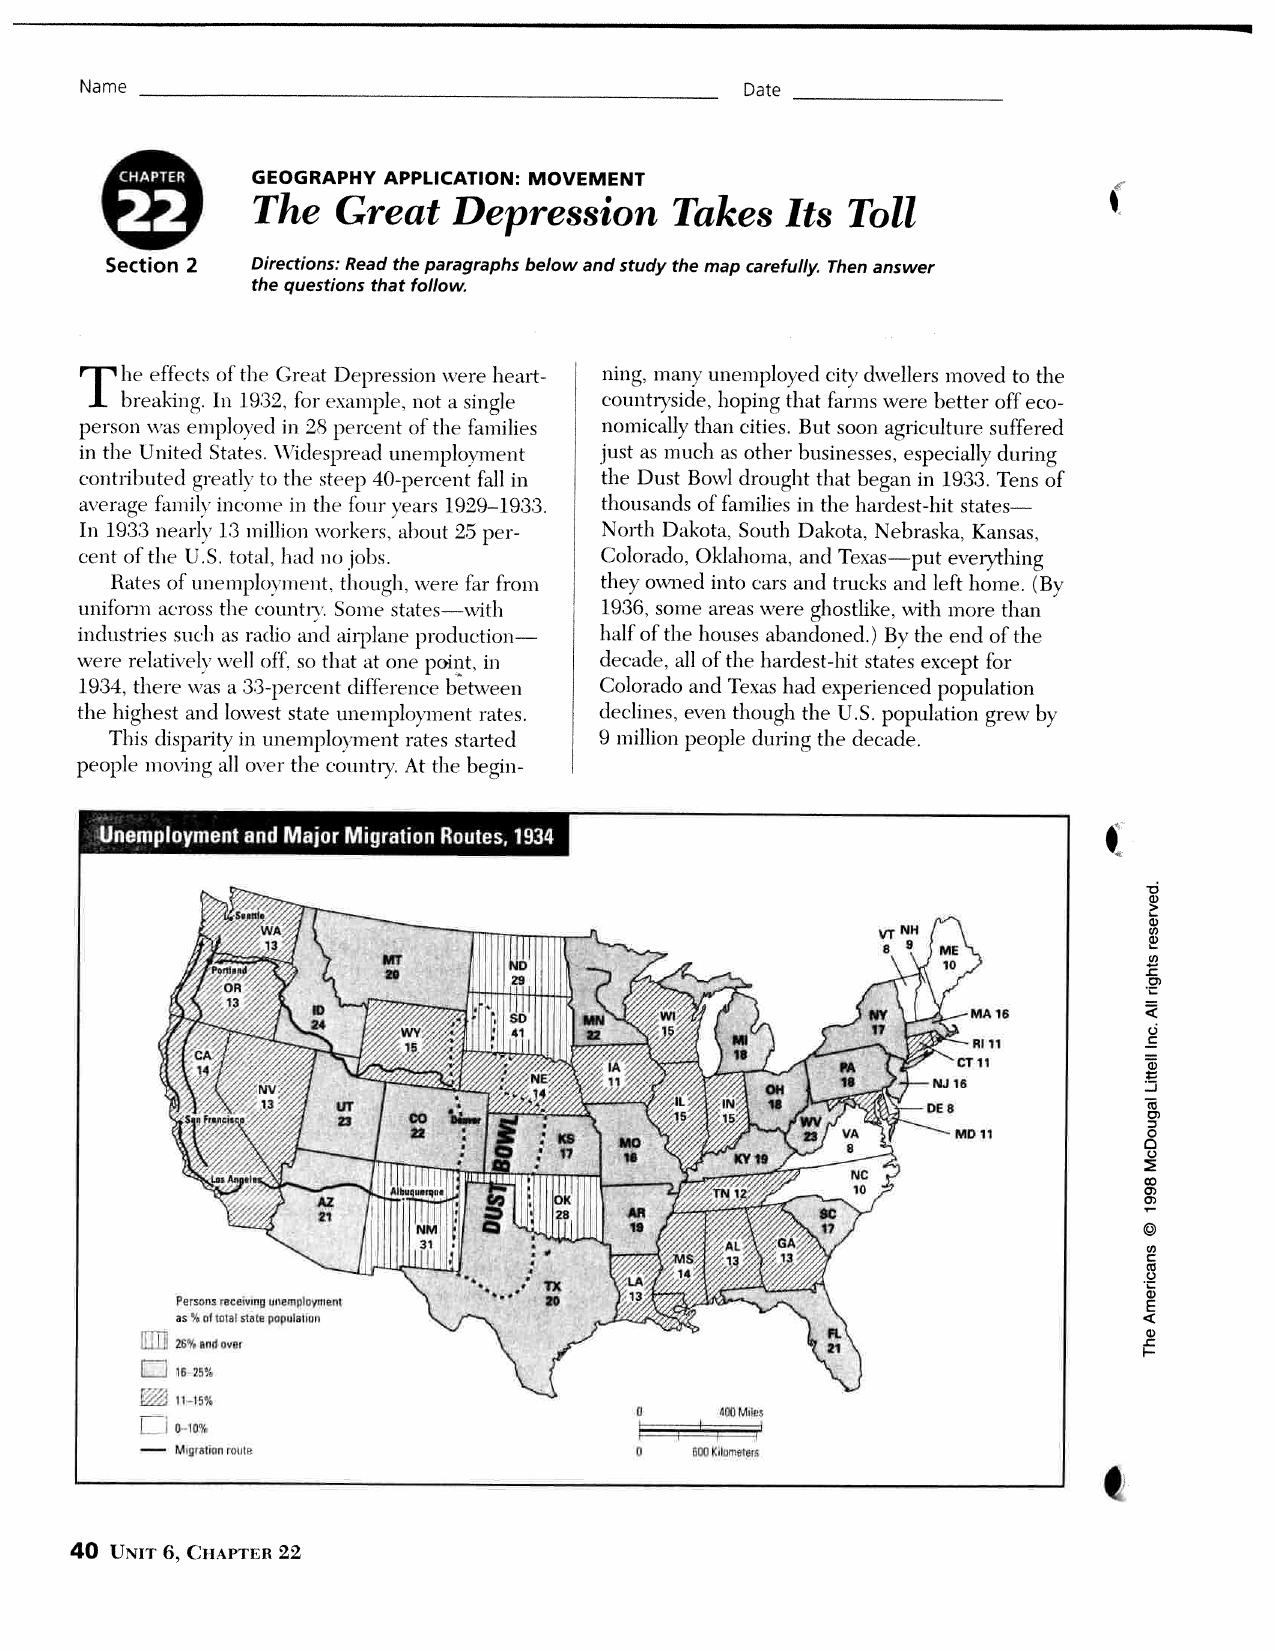 The Great Depression Takes Its Toll I